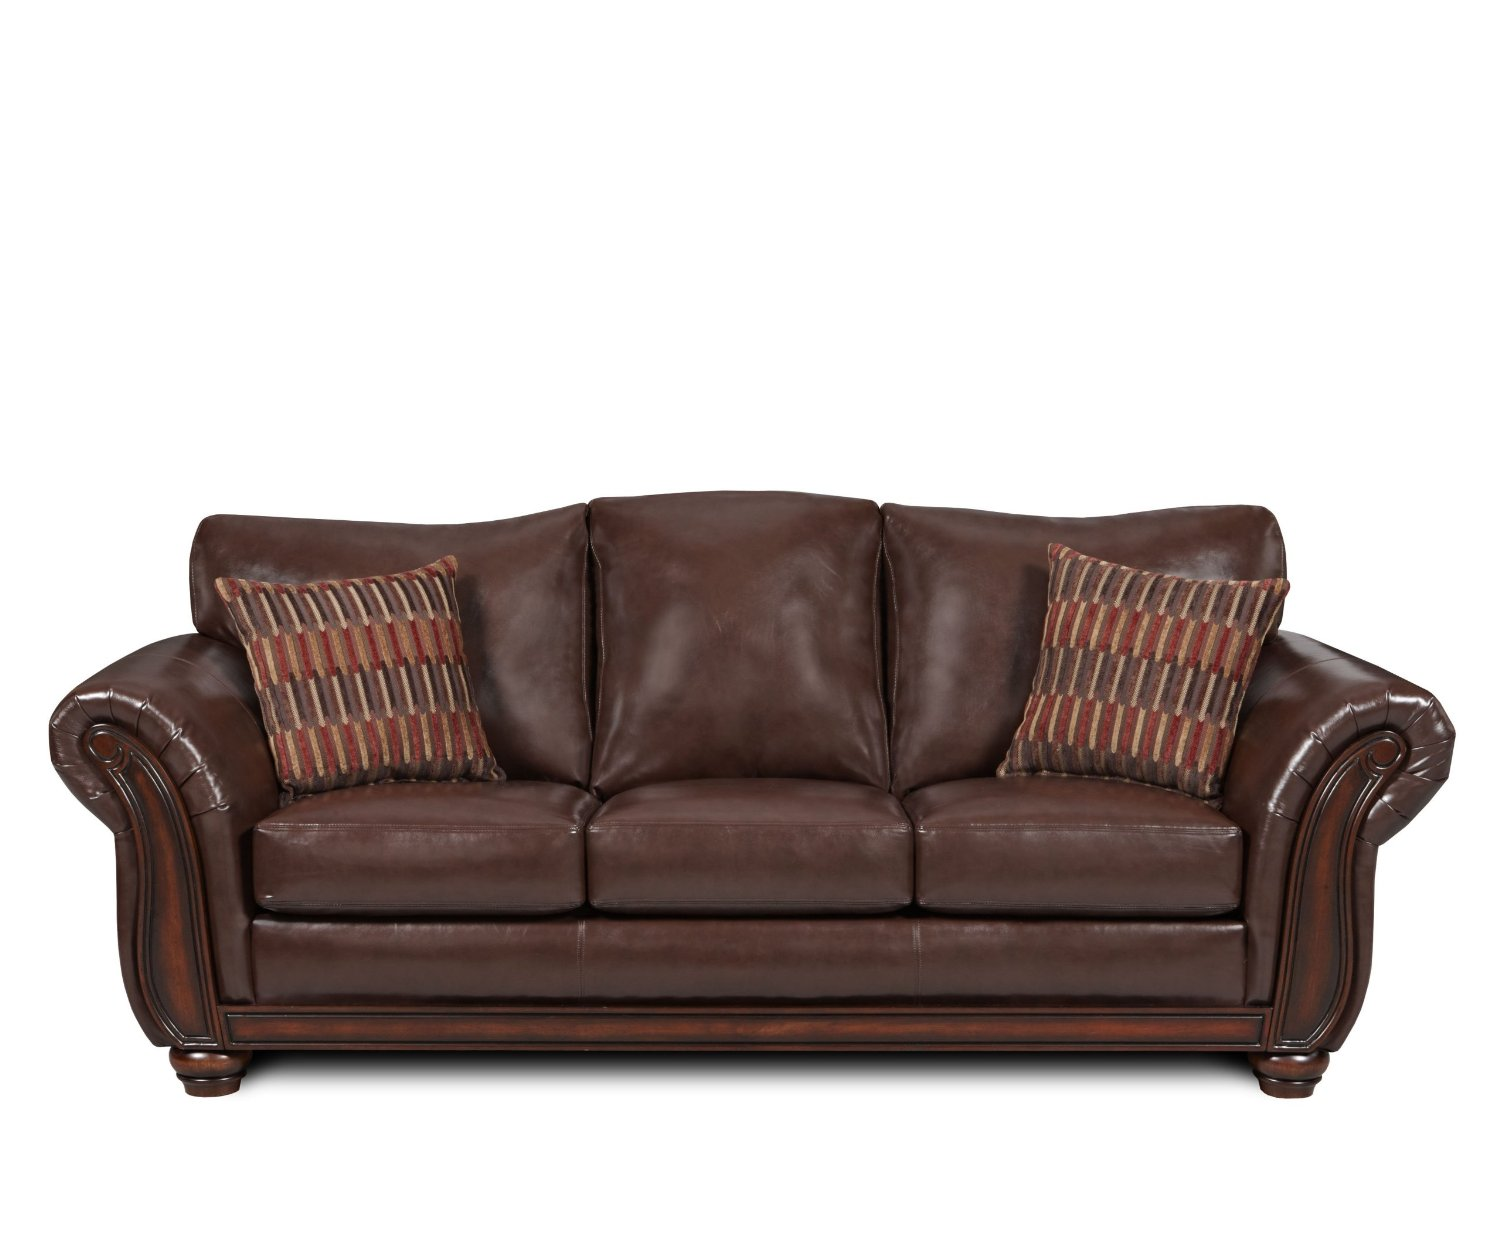 leather couch furniture guide leather On furniture leather sofa